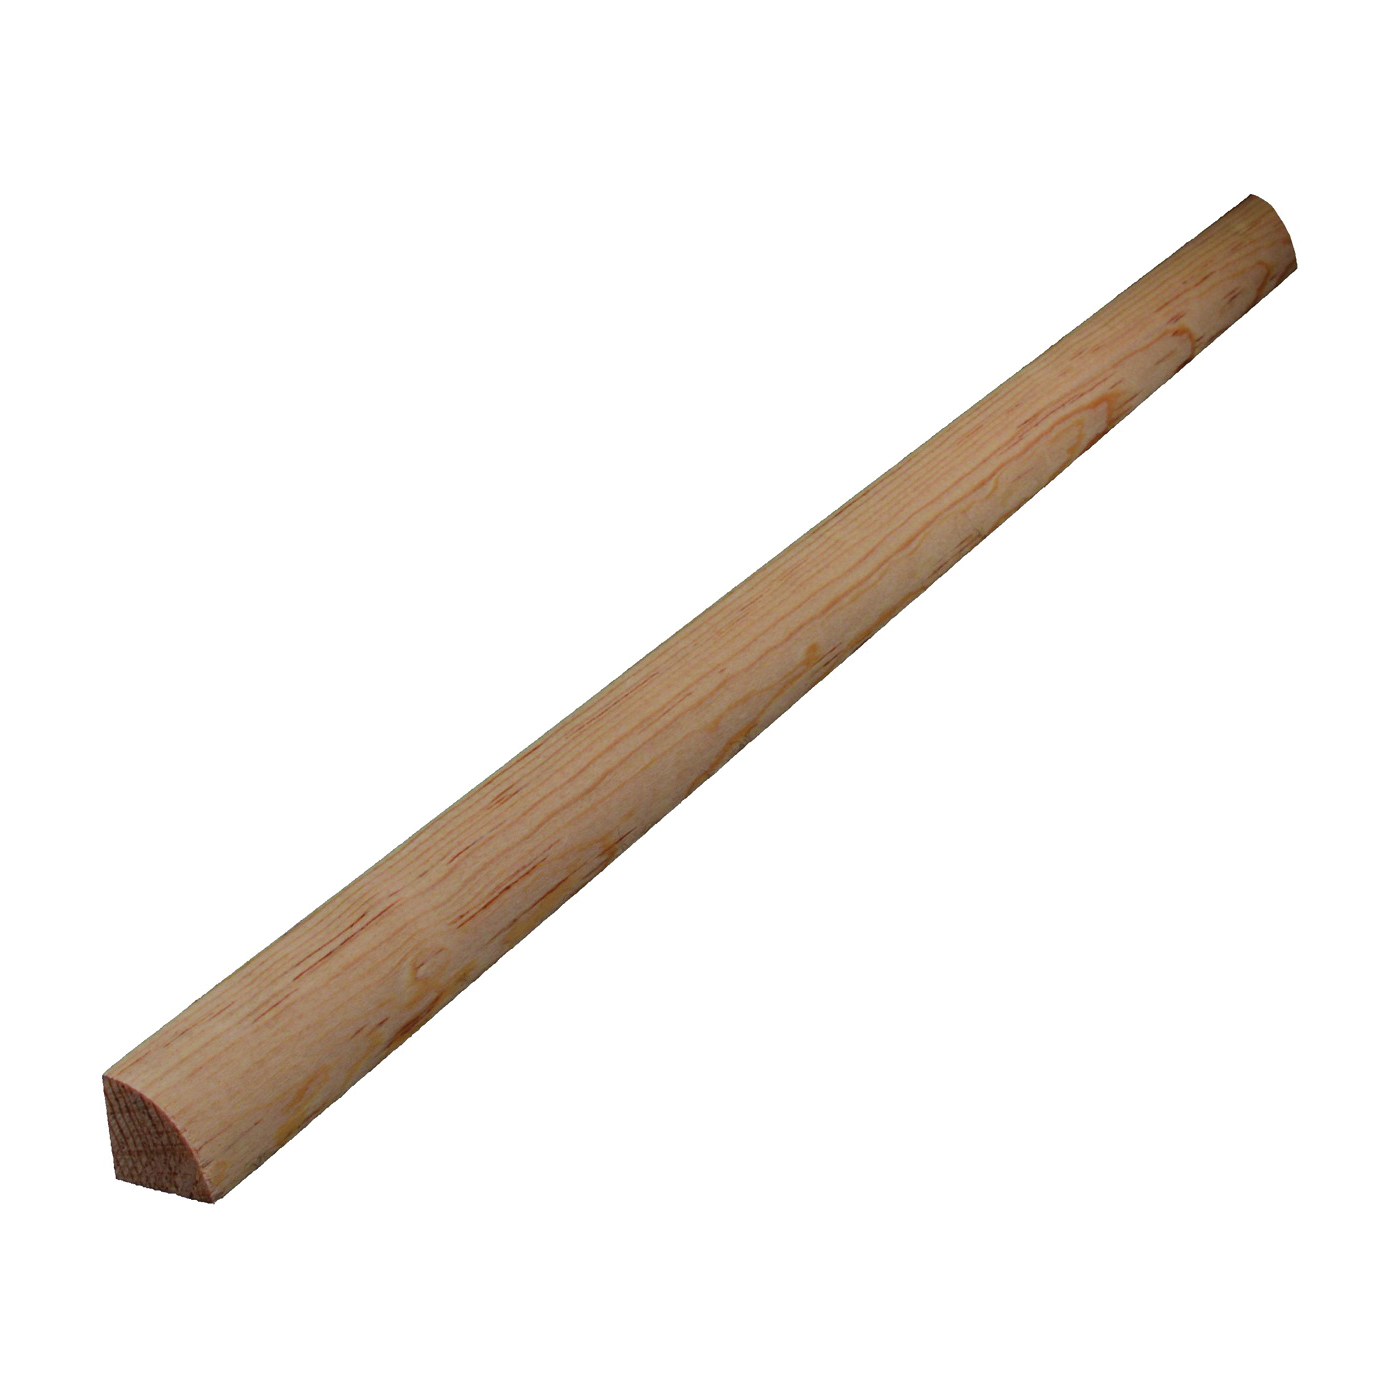 Picture of ALEXANDRIA Moulding 0W105-20096C1 Quarter-Round Molding, 96 in L, 3/4 in W, Pine